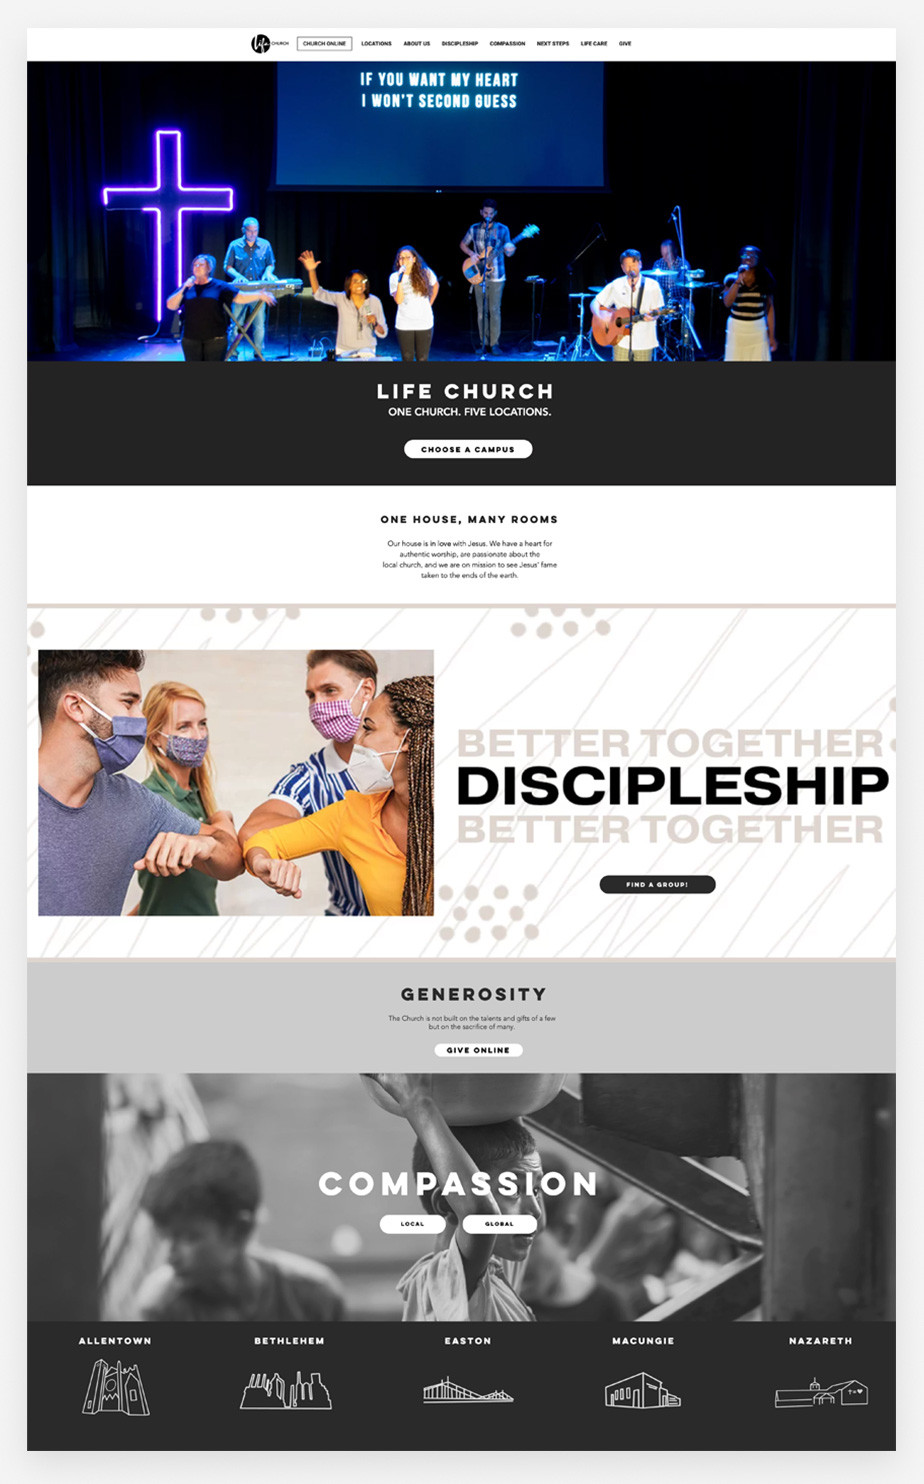 Best church websites example by Life Church